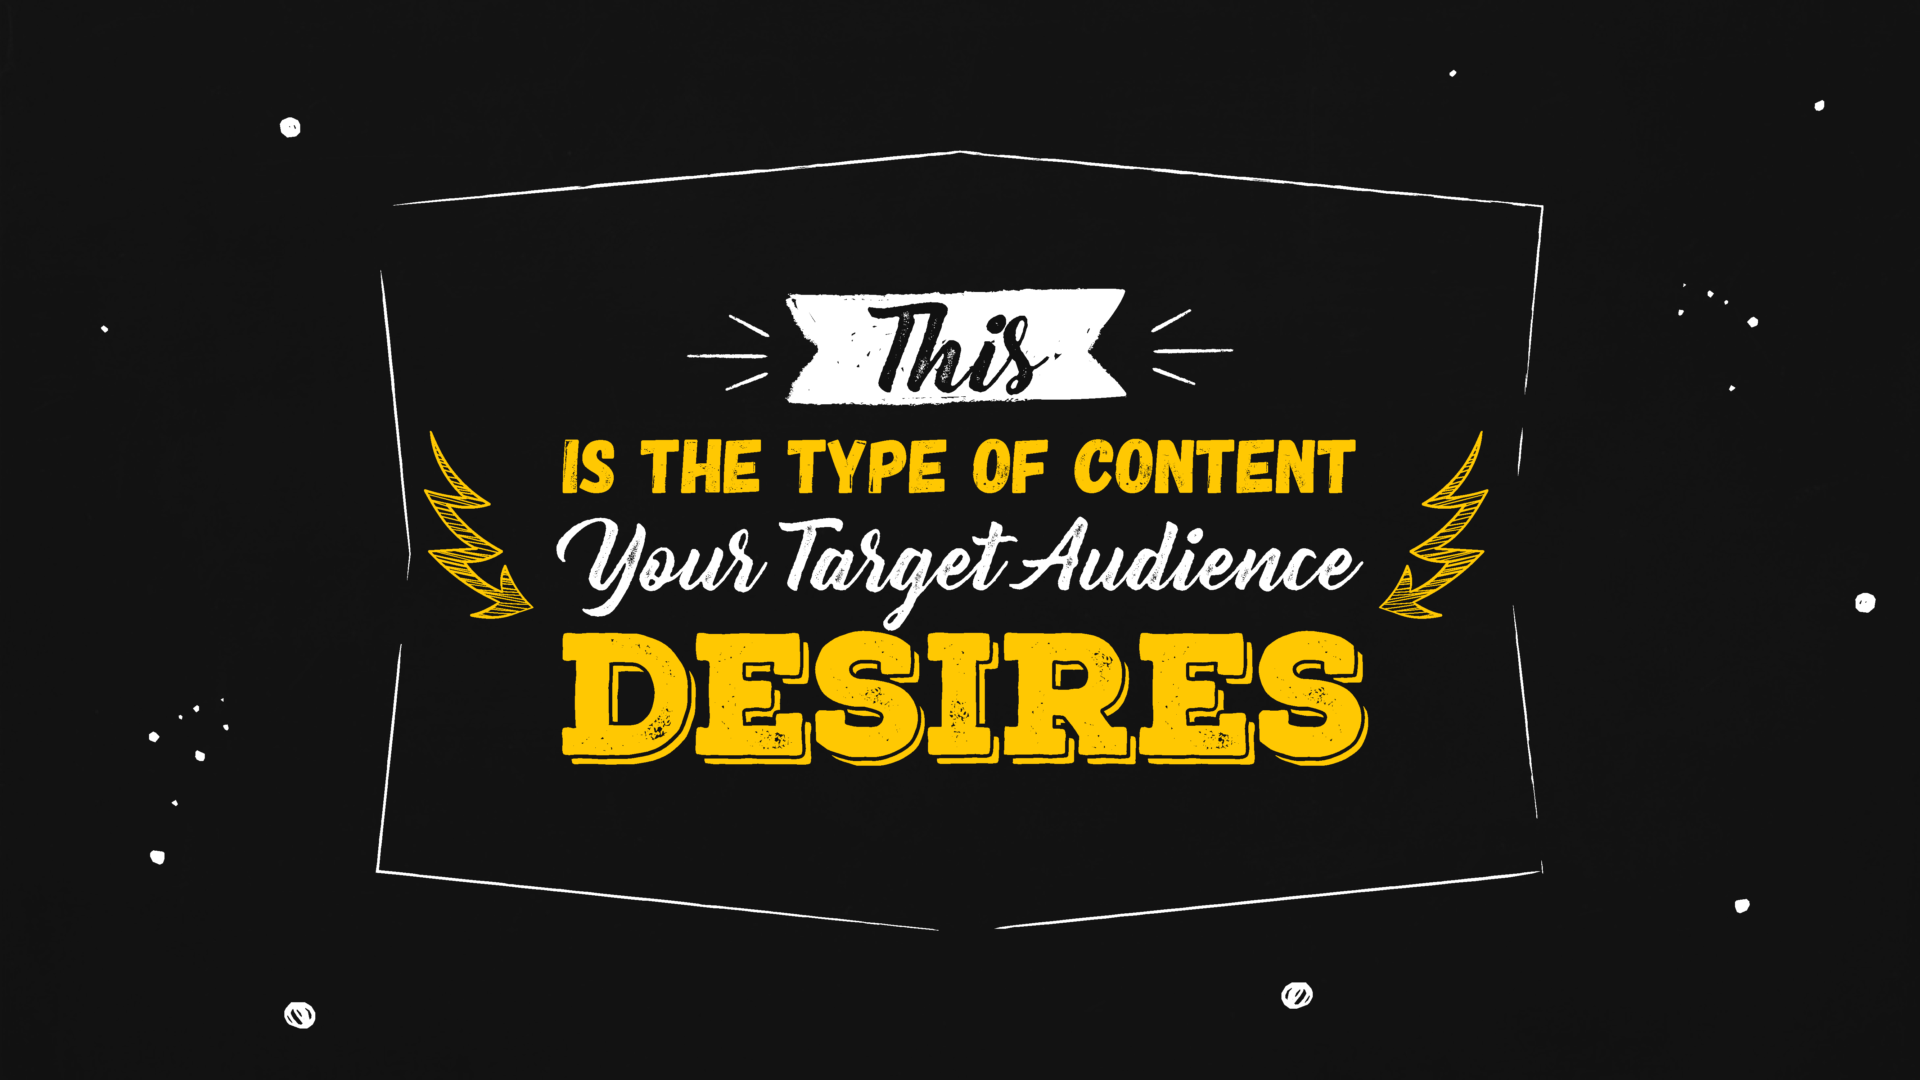 SaaS Content Marketing: This Is the Type of Content Your Target Audience Desires